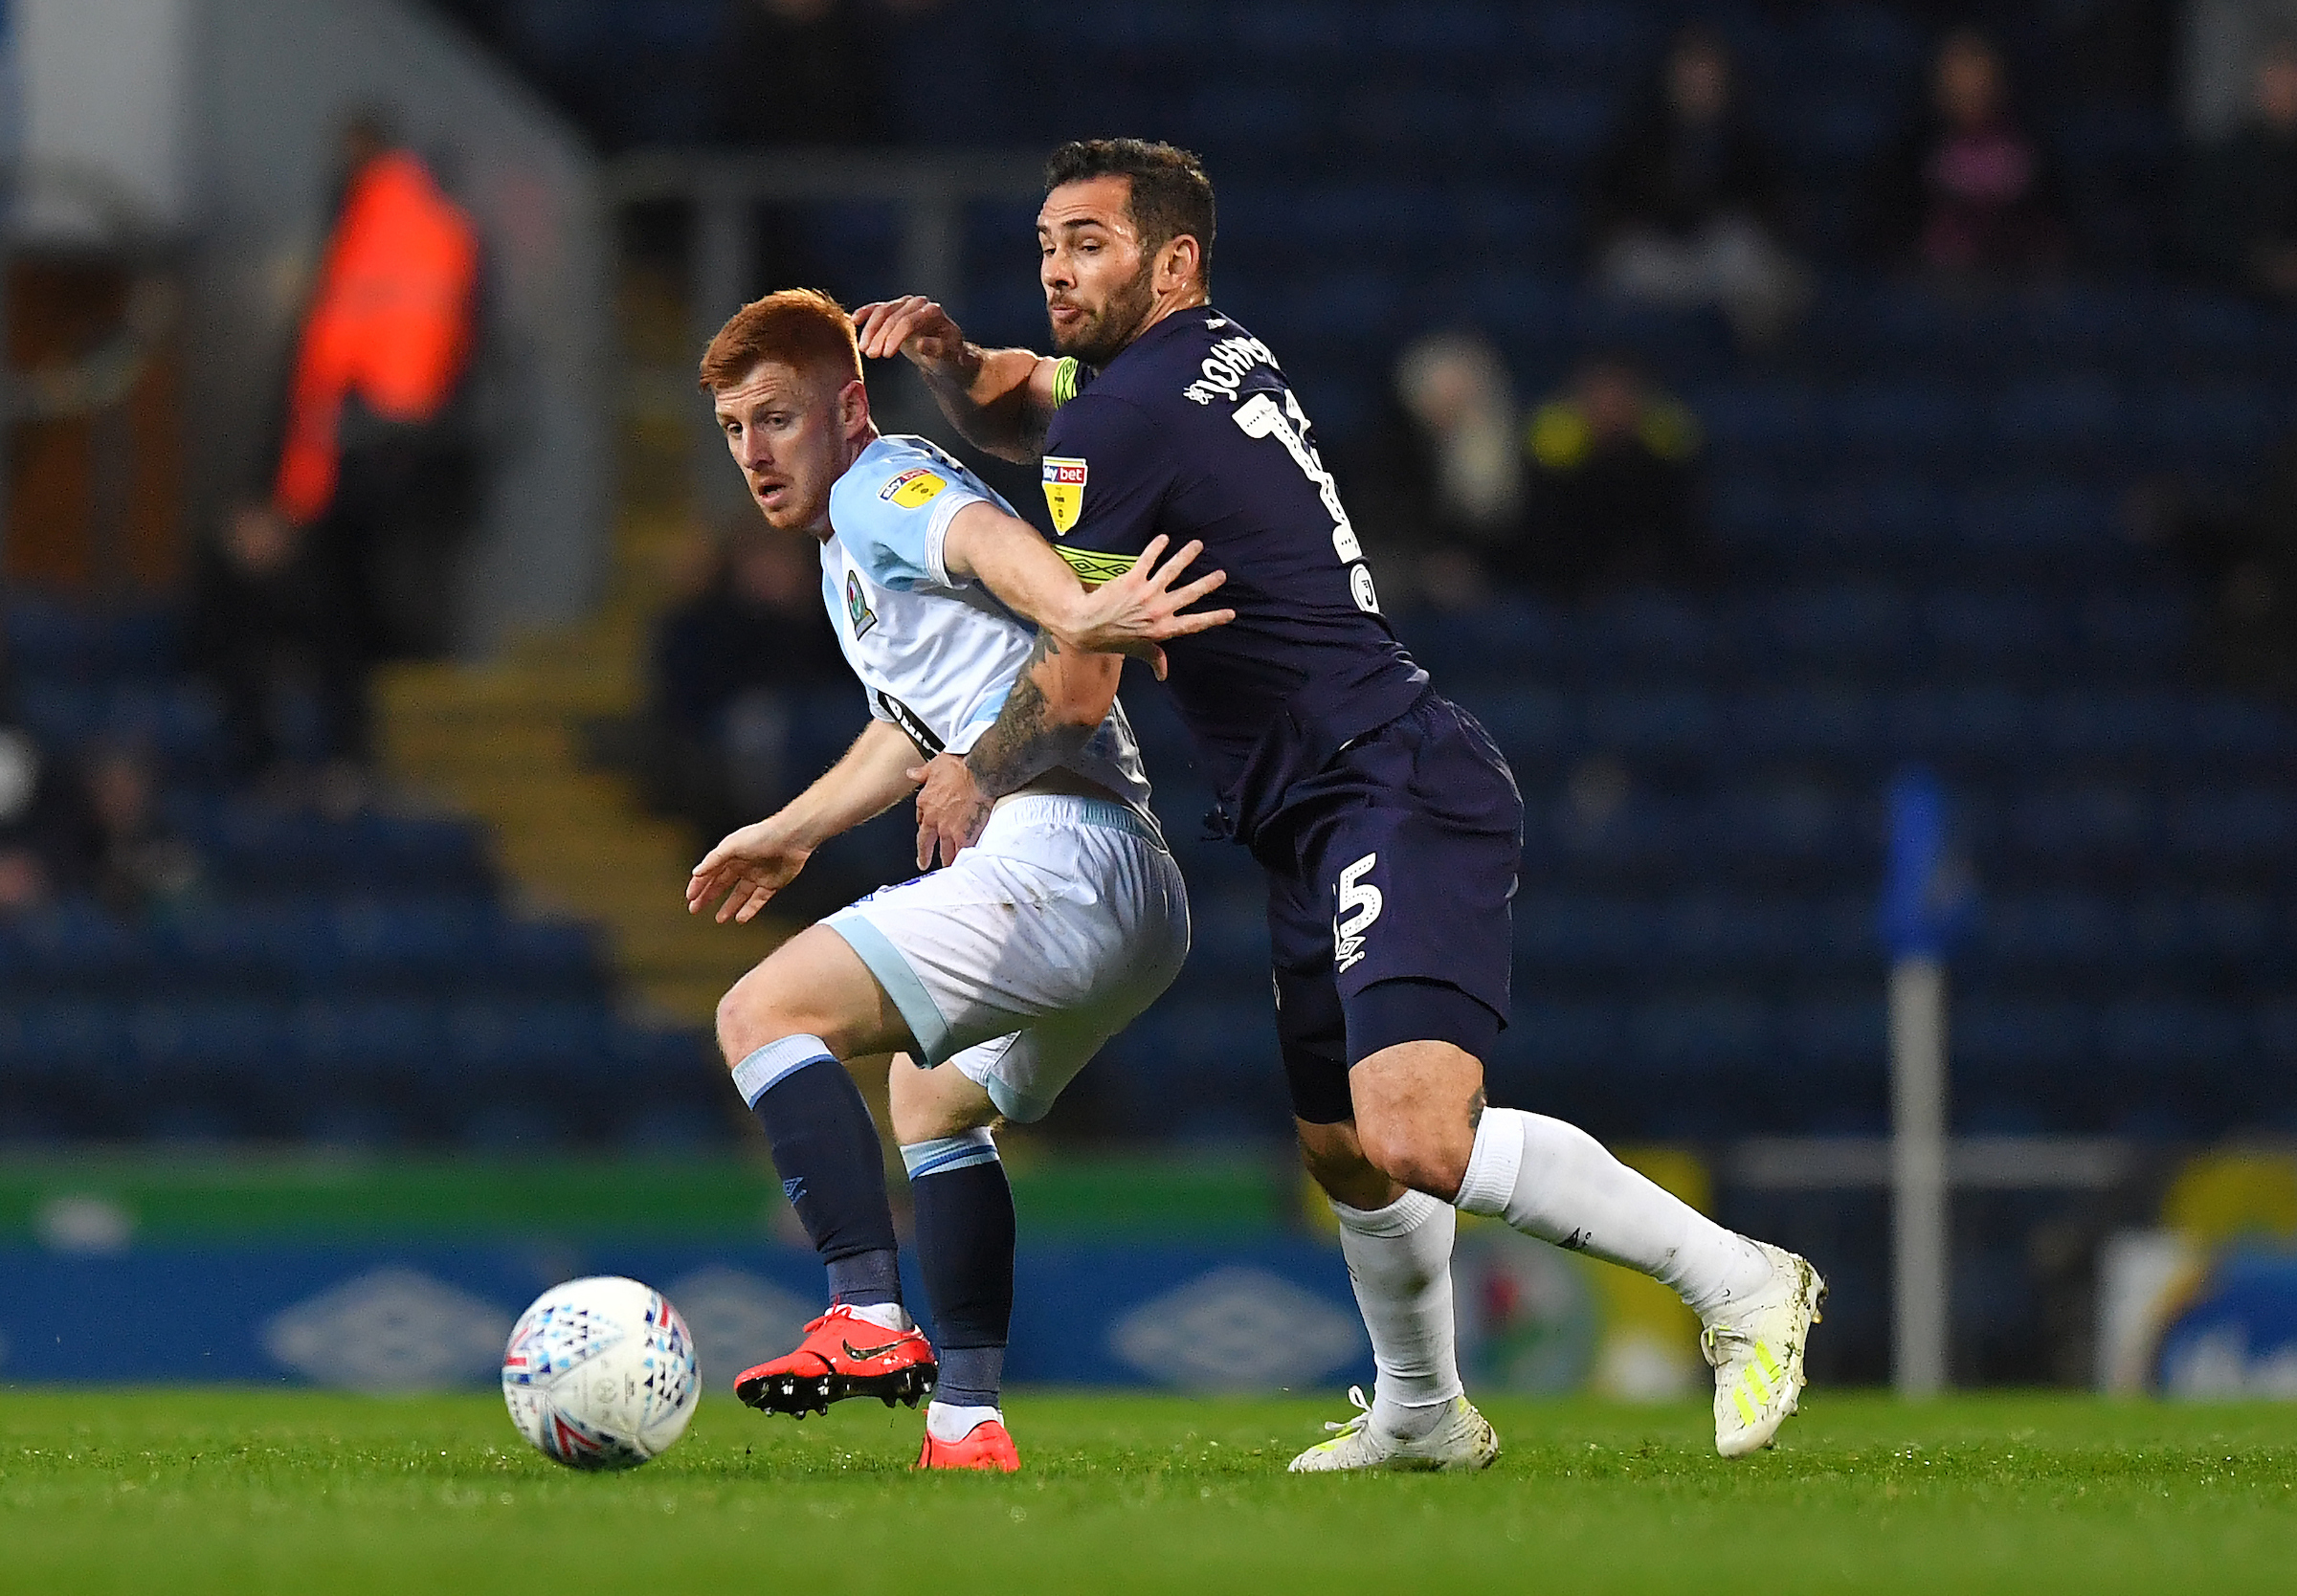 Rovers midfielder Harrison Reed impressed against Derby County